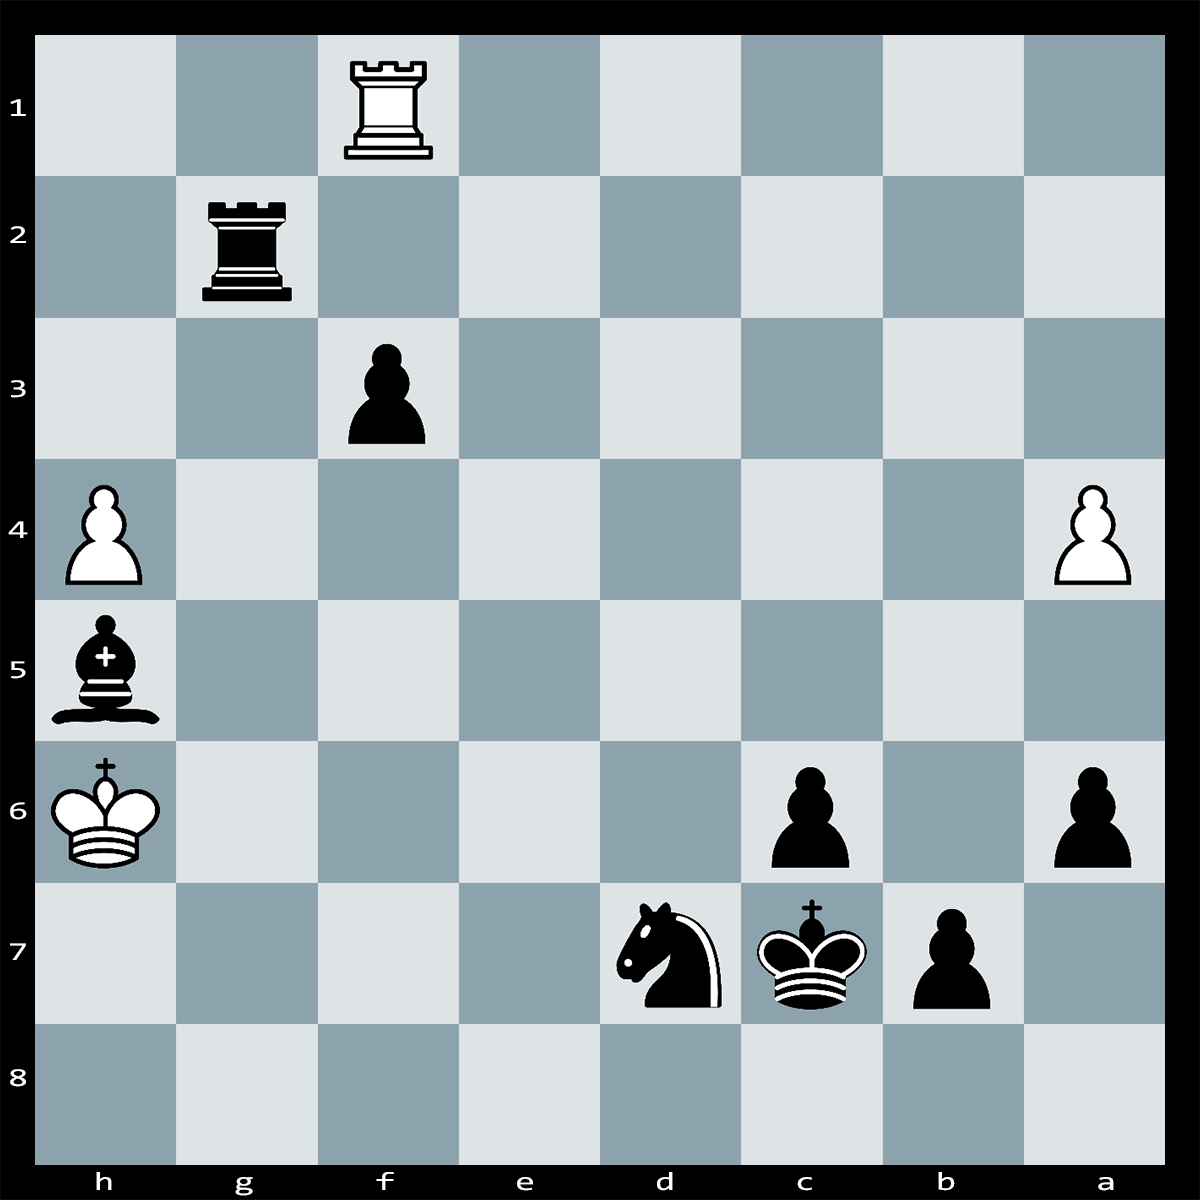 Black to Move and Mate in 3 - Chess Puzzle #4